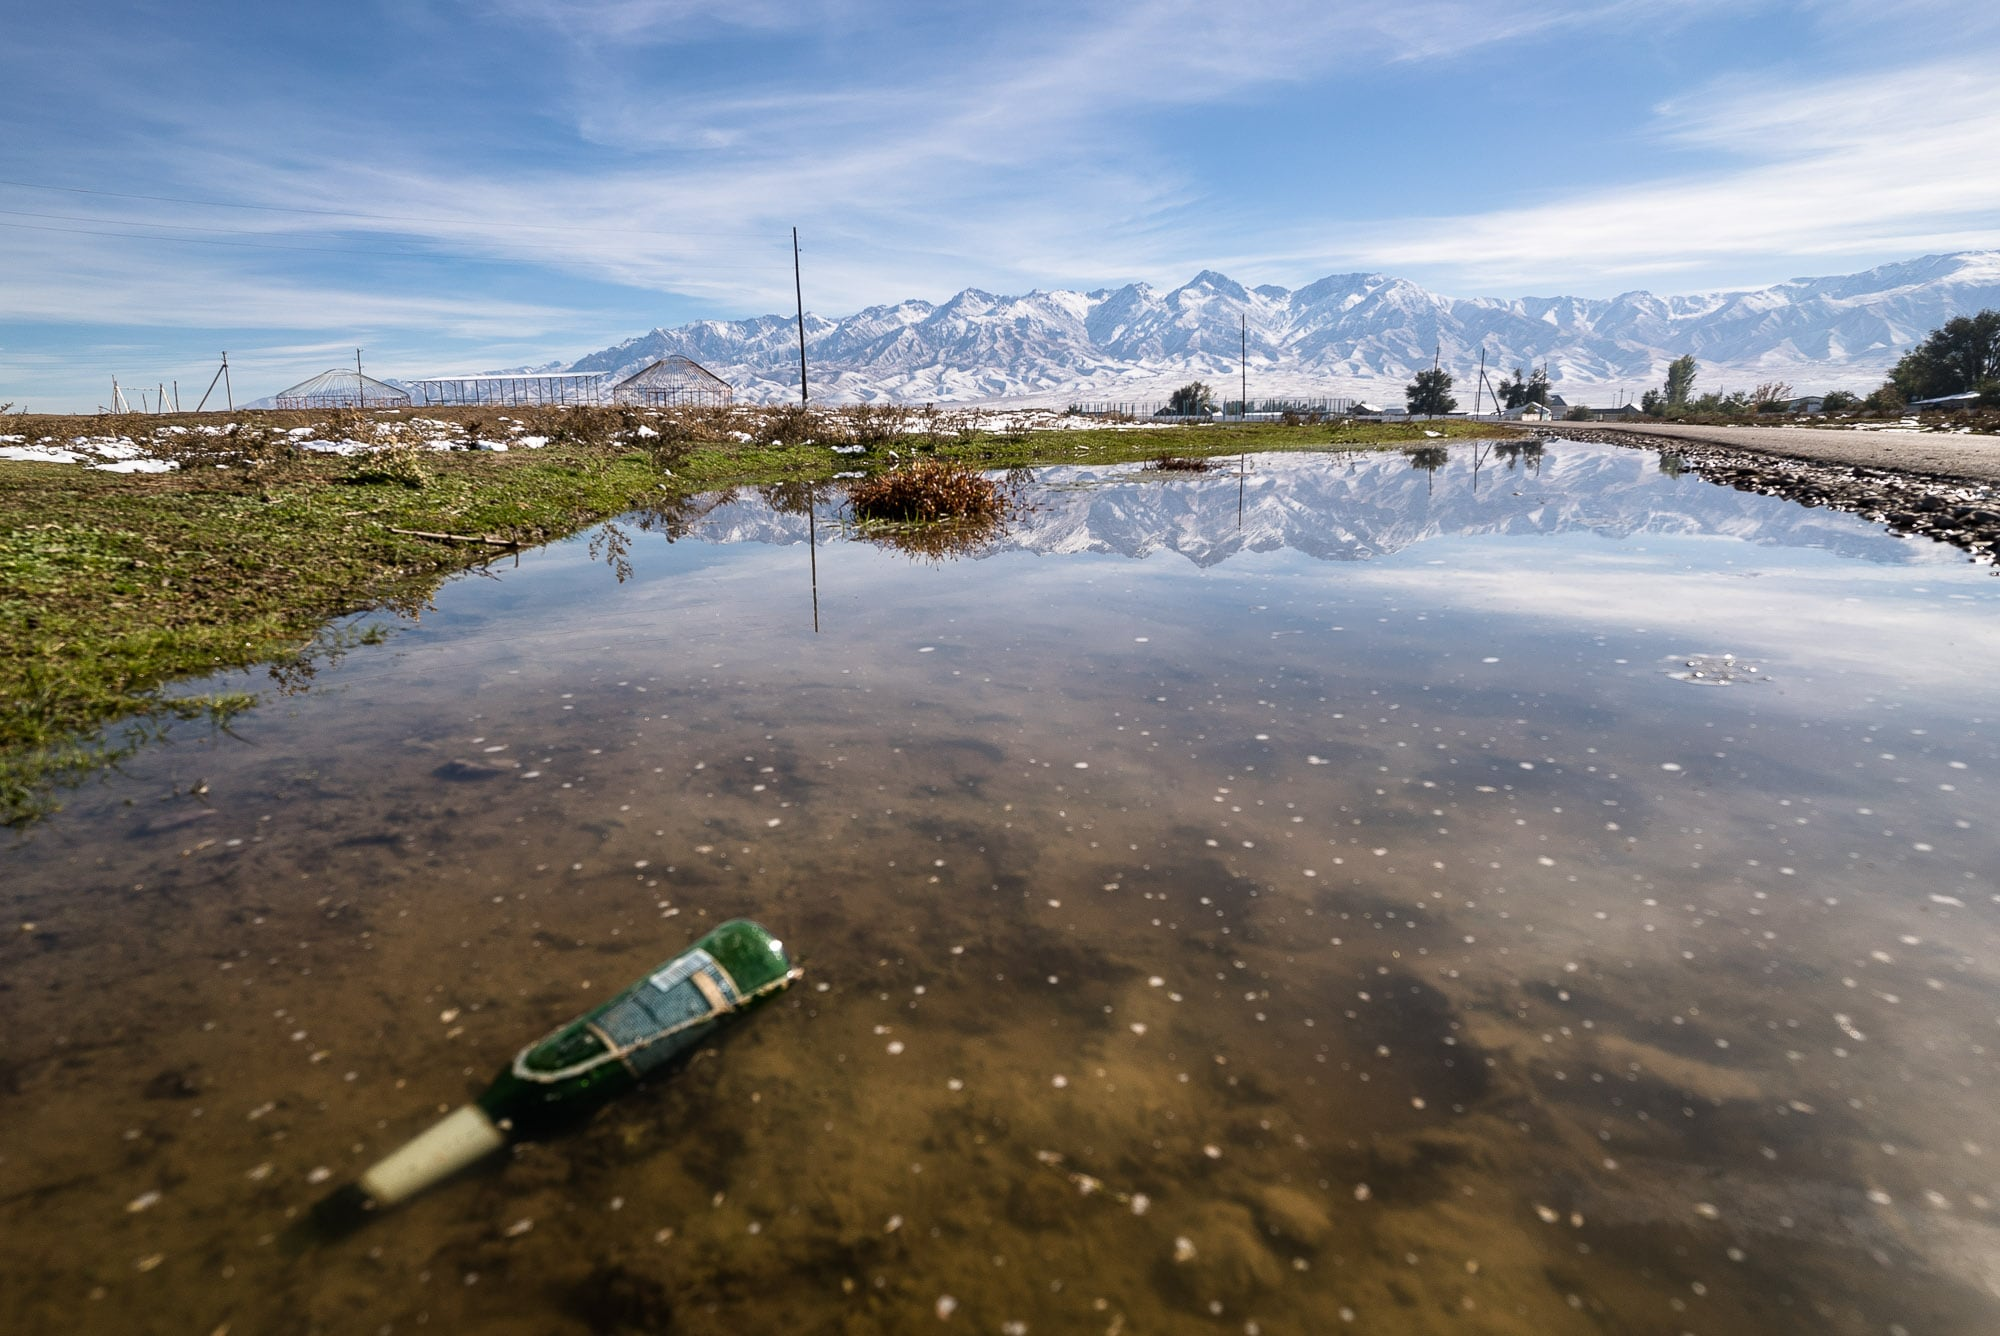 beer bottle and reflection and mountains